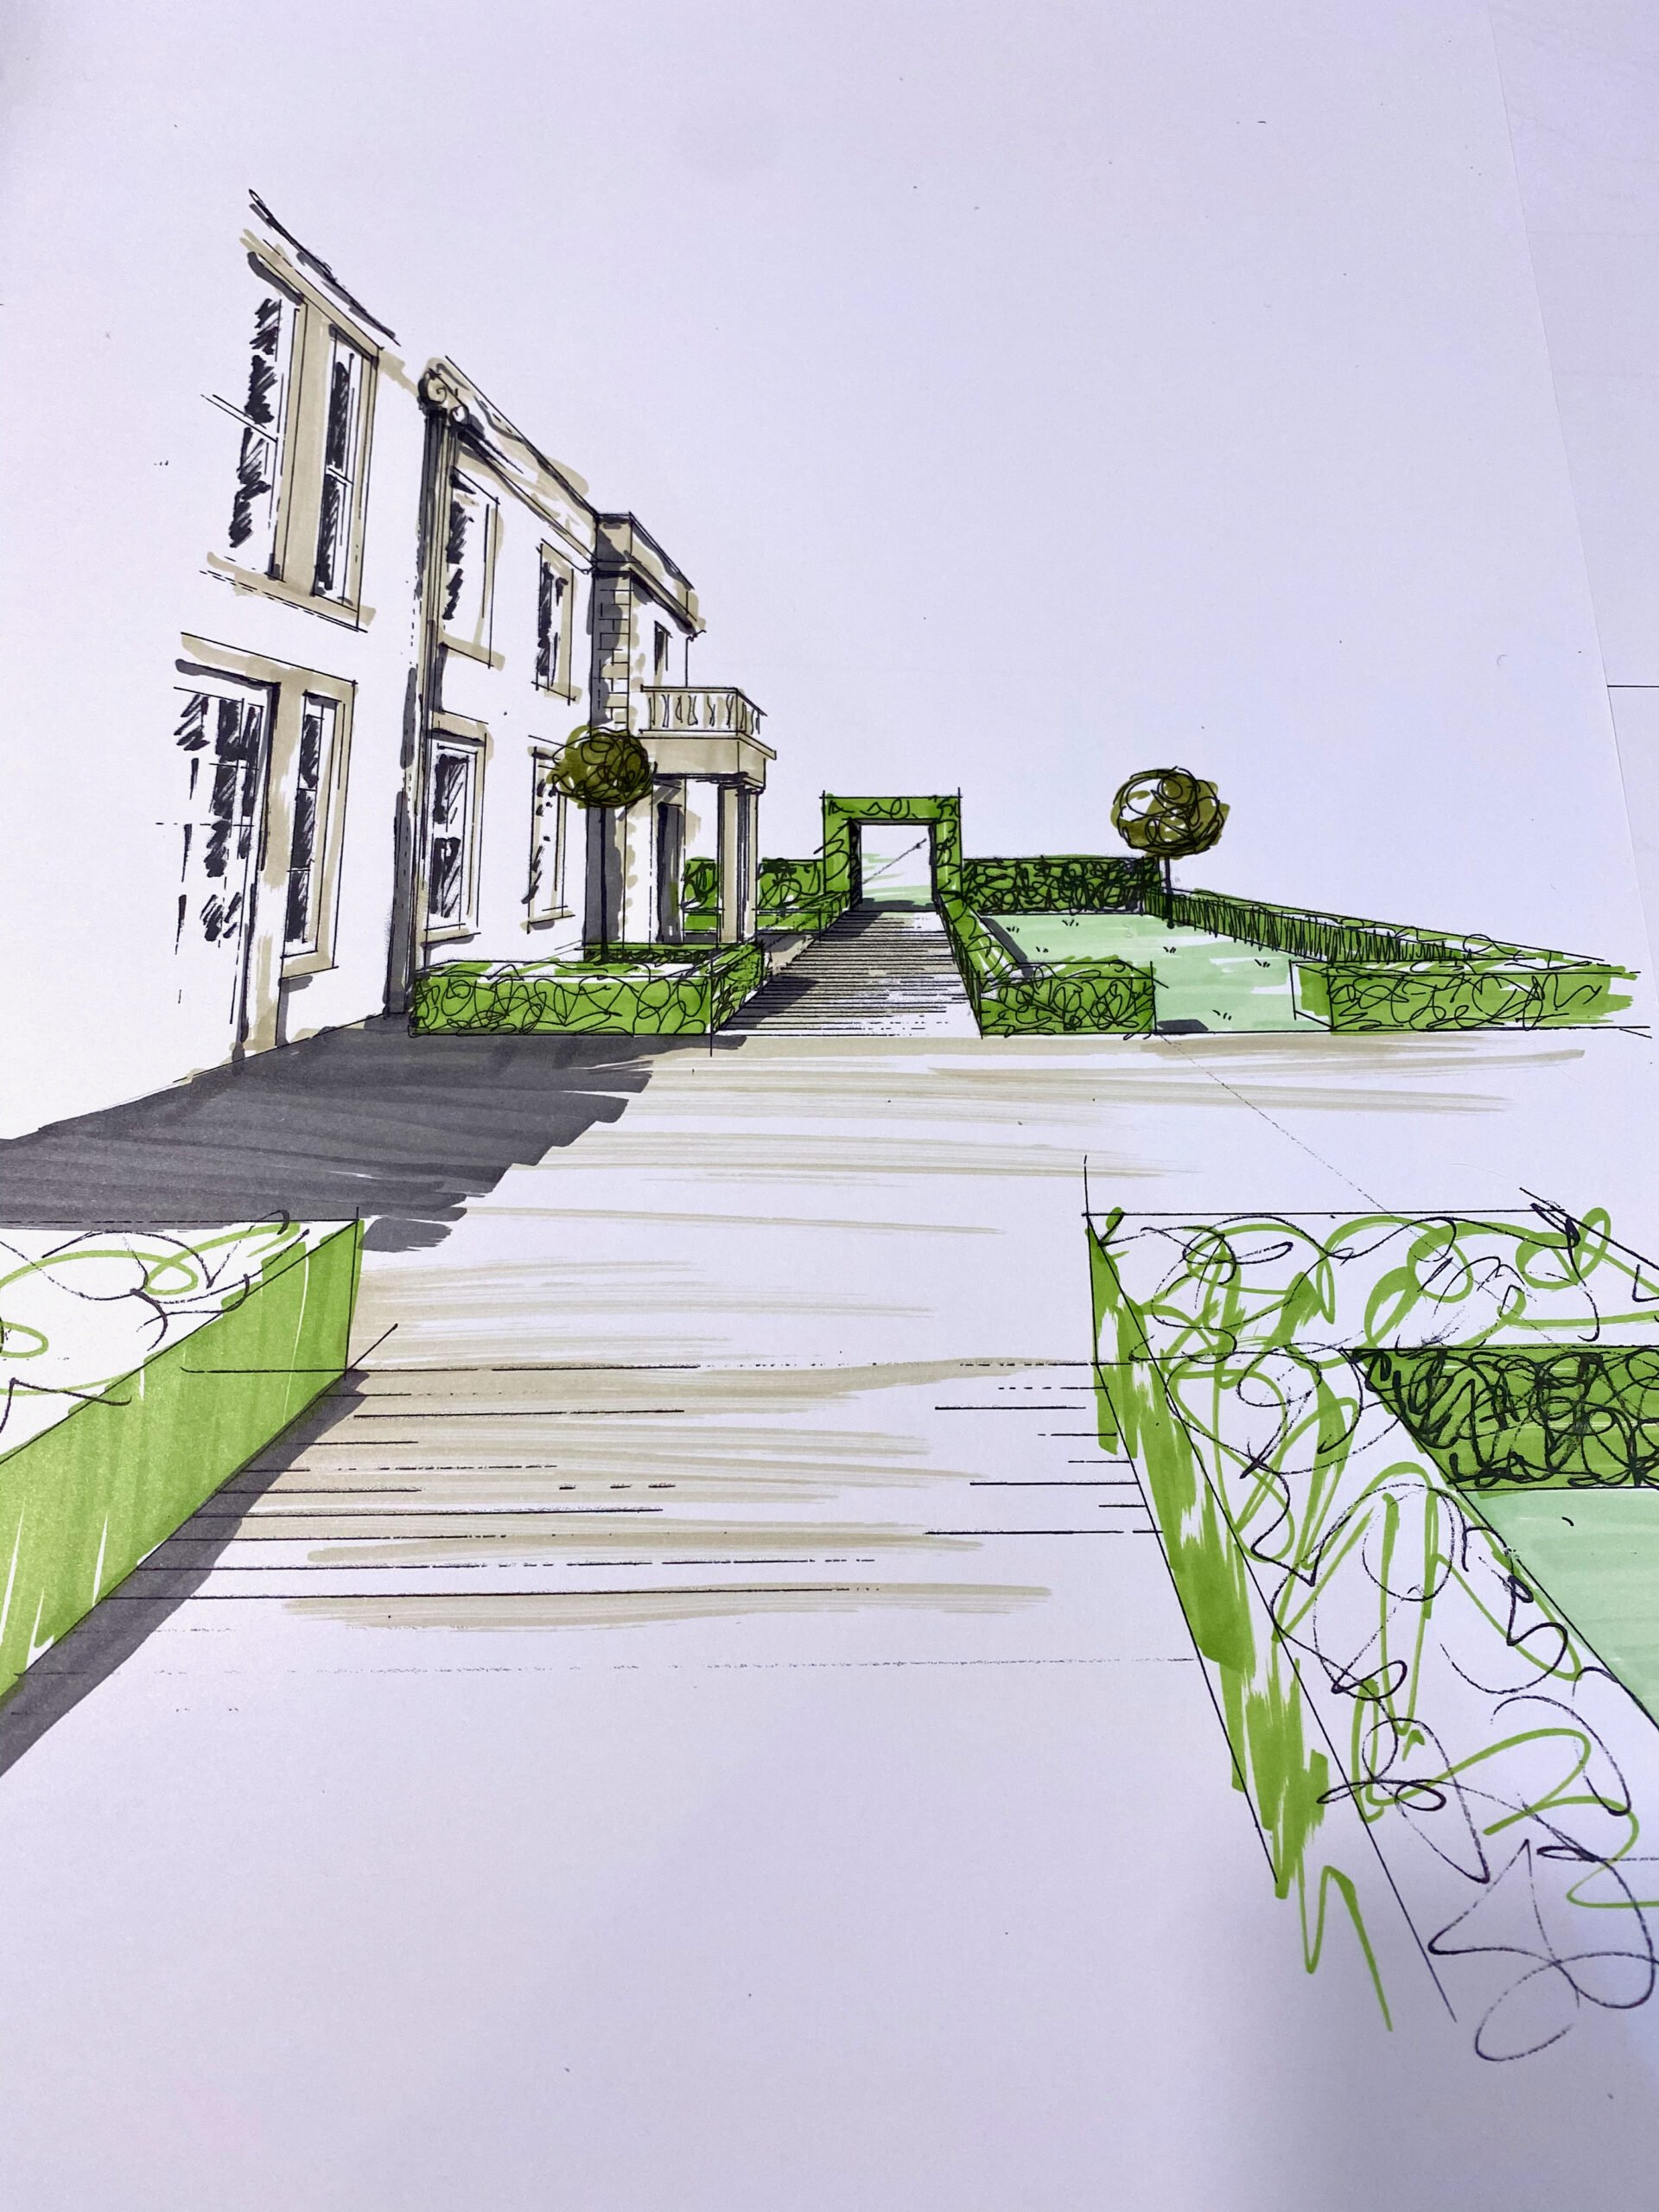 sketching out the rear terrace of a large Georgian house in Buckinghamshire